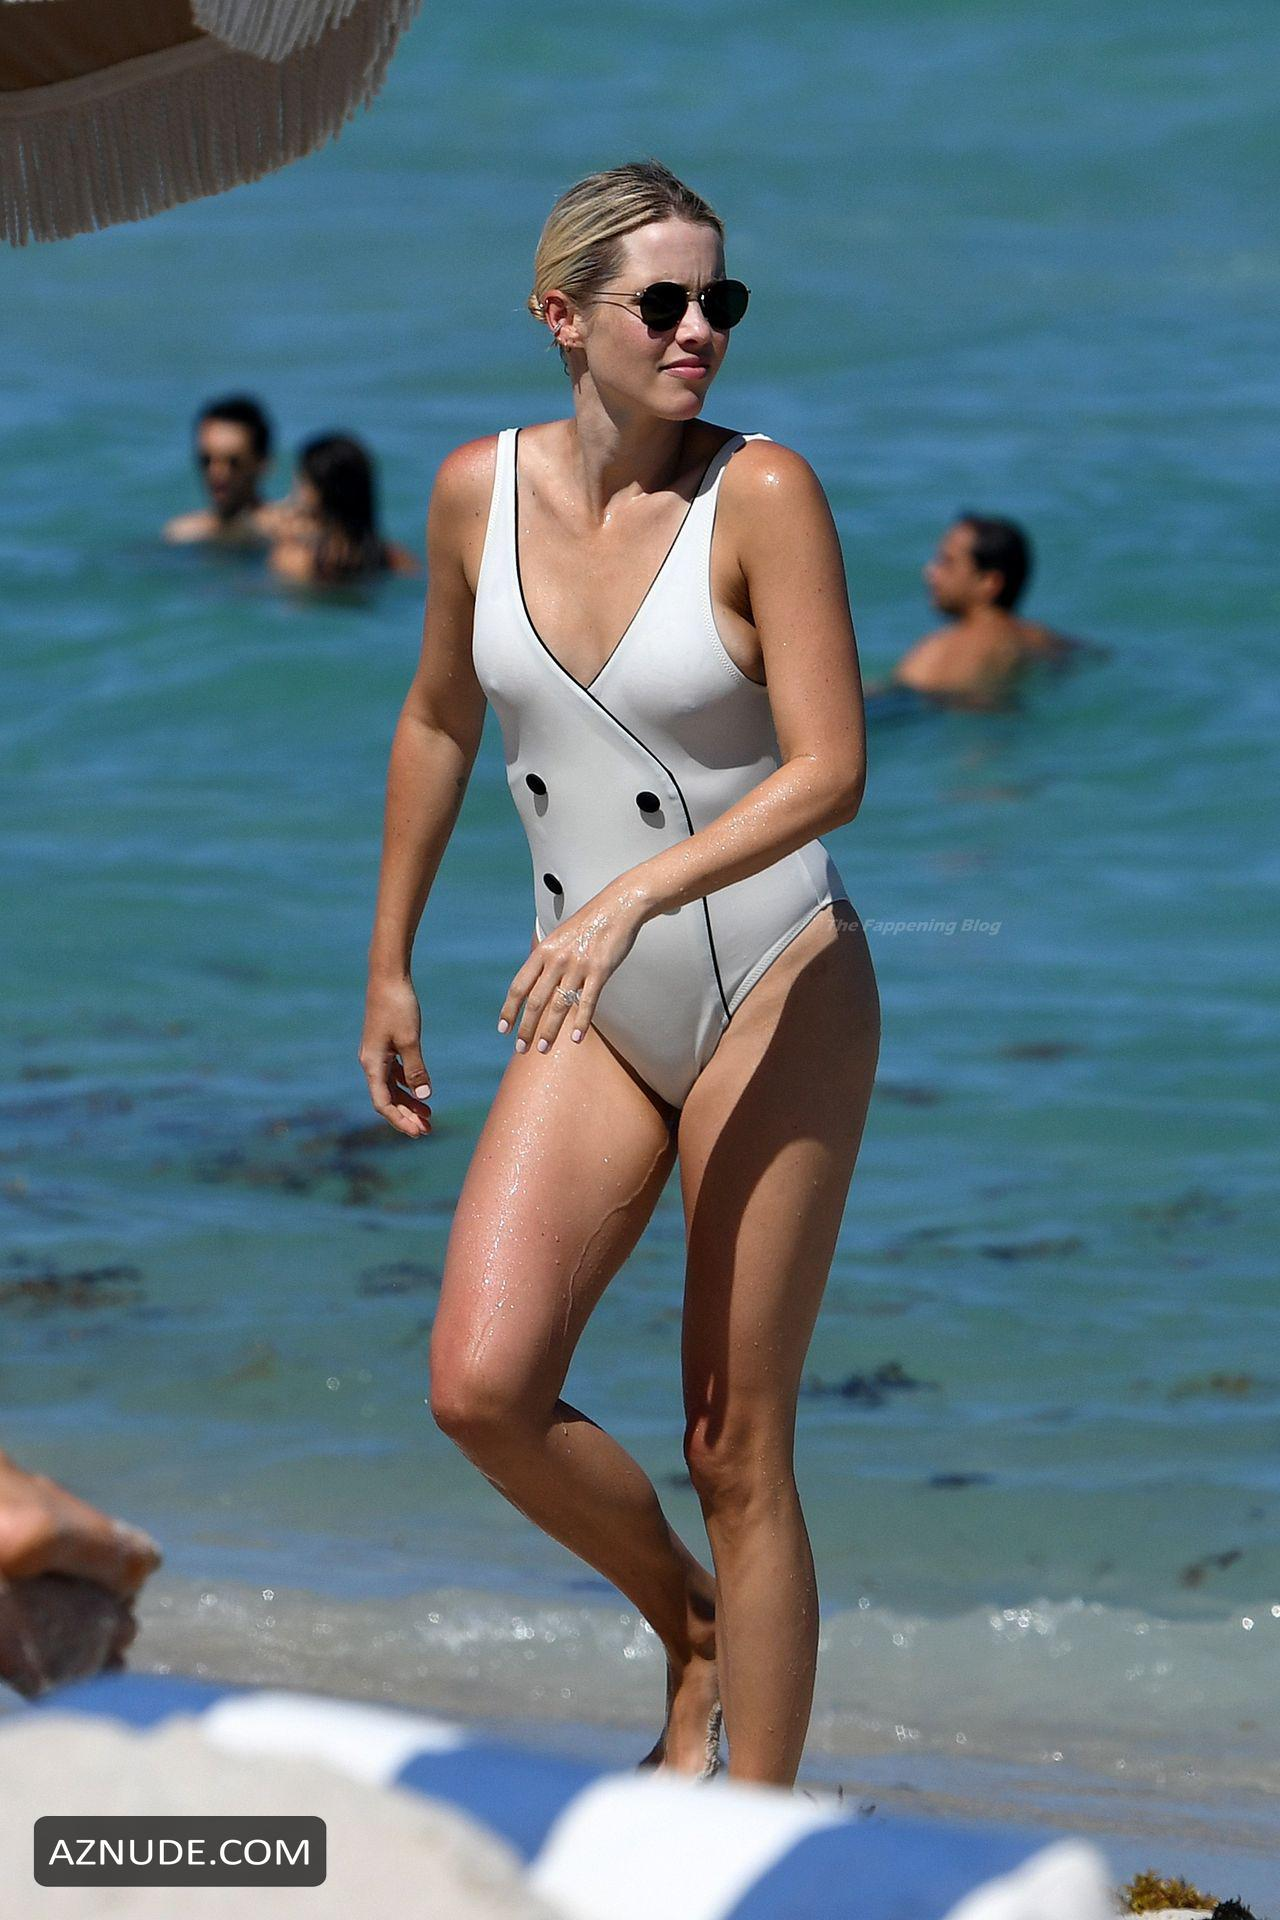 Holt naked claire Claire Holt